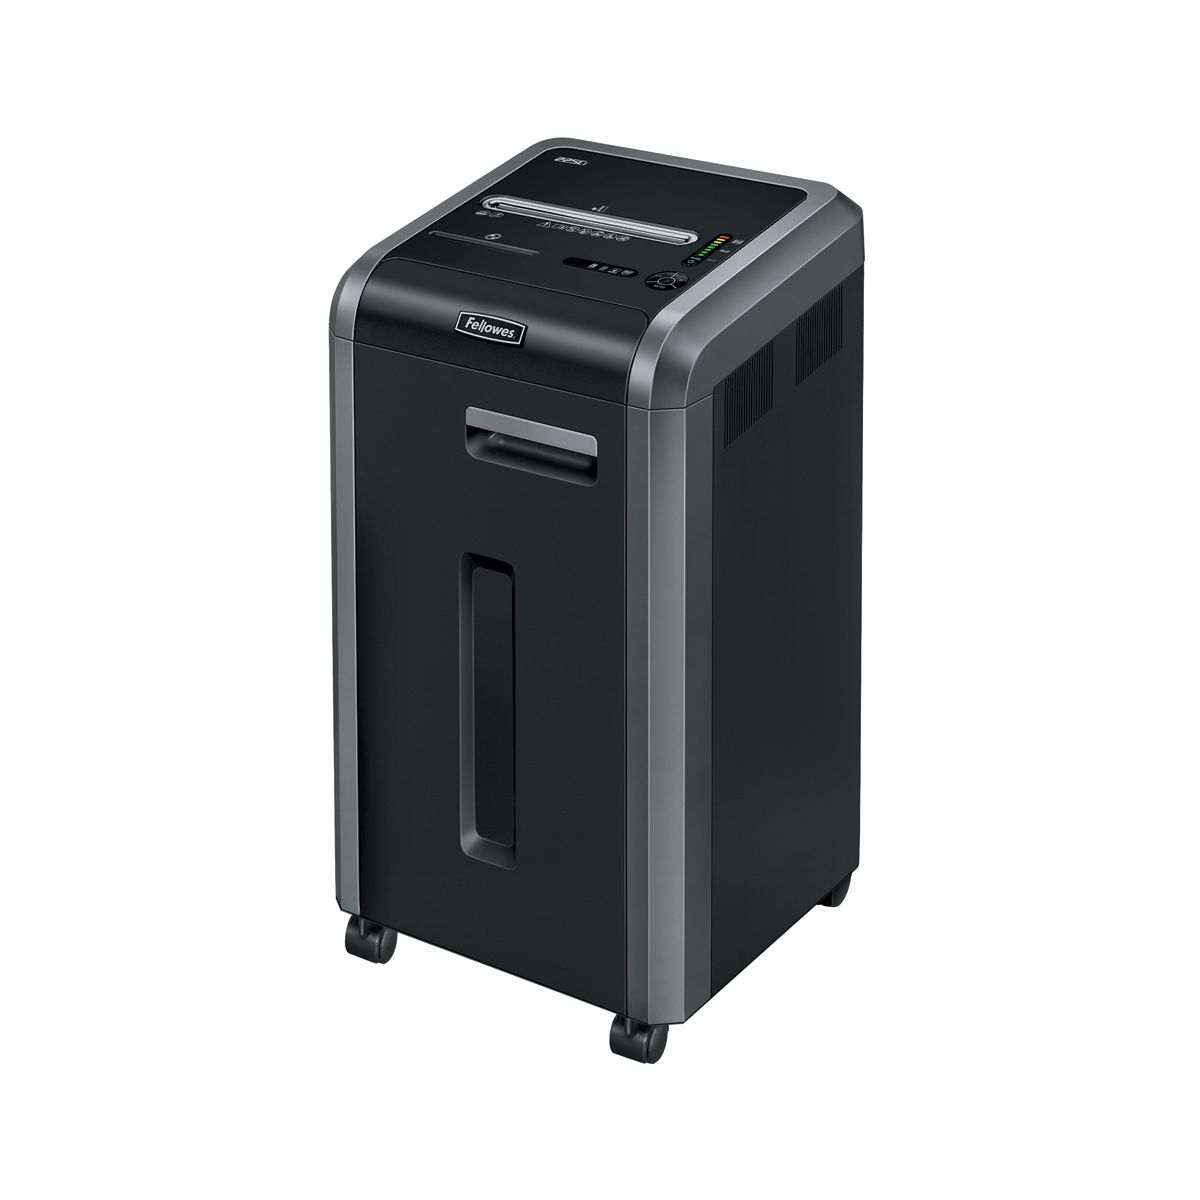 Destructeur fellowes 225 ci shredder - 10% de remise imm�diate avec le code : deal10